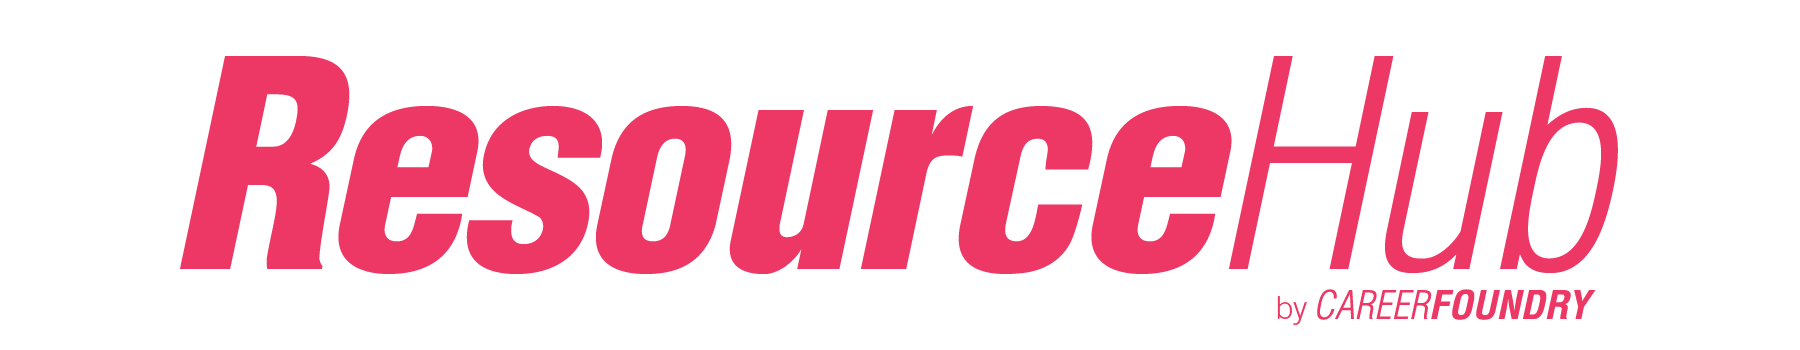 contentmodel-2016-resourcehub-pink_1_1.png